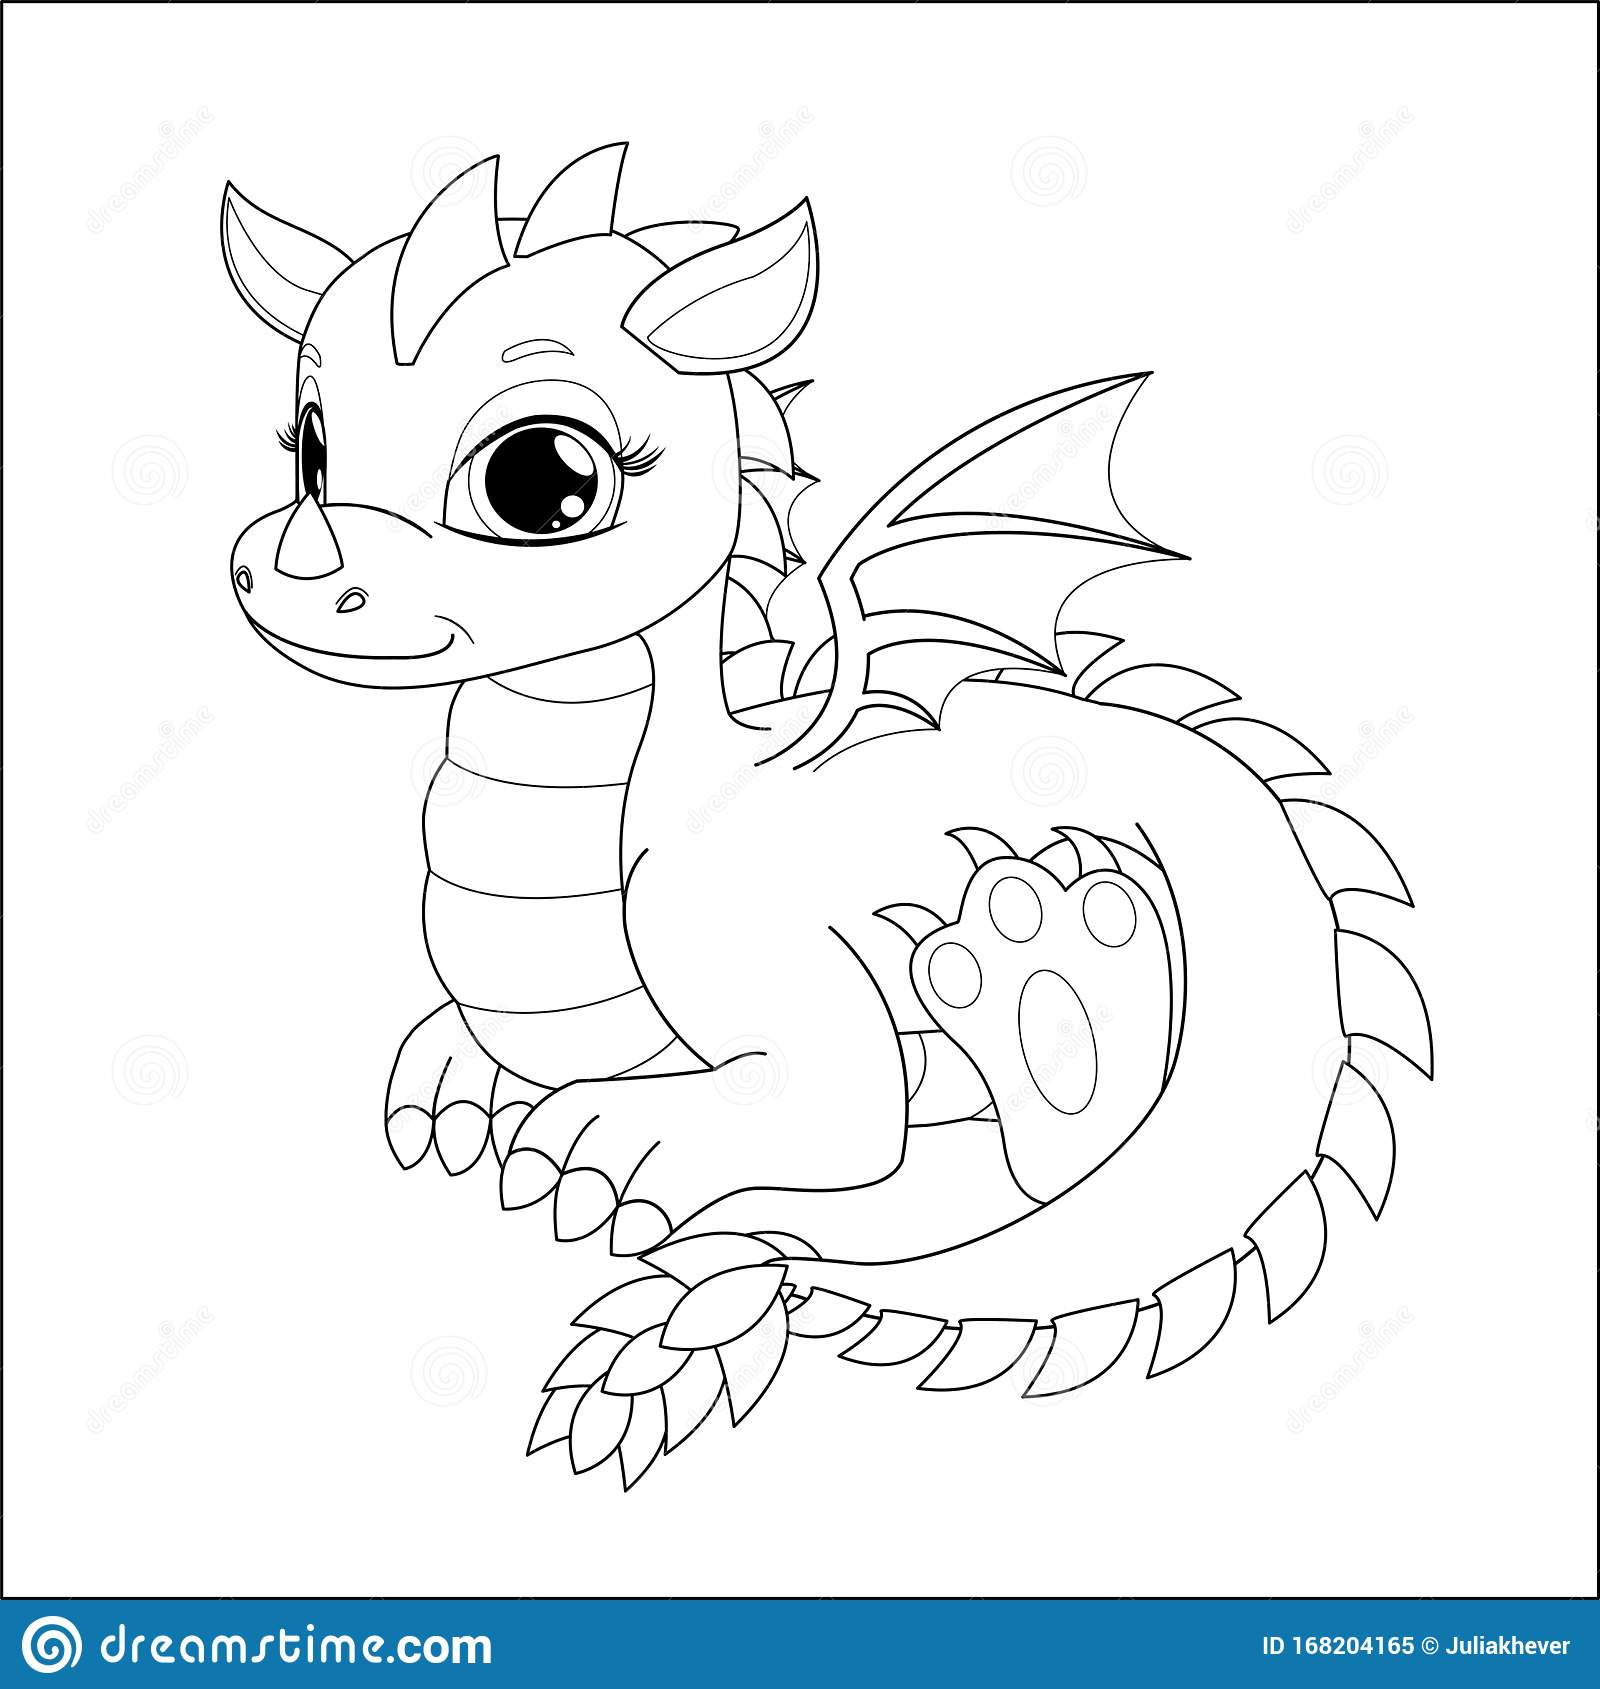 Coloring Page For Kids With Funny Cartoon Dragon Stock Vector Illustration Of Funny Line 168204165